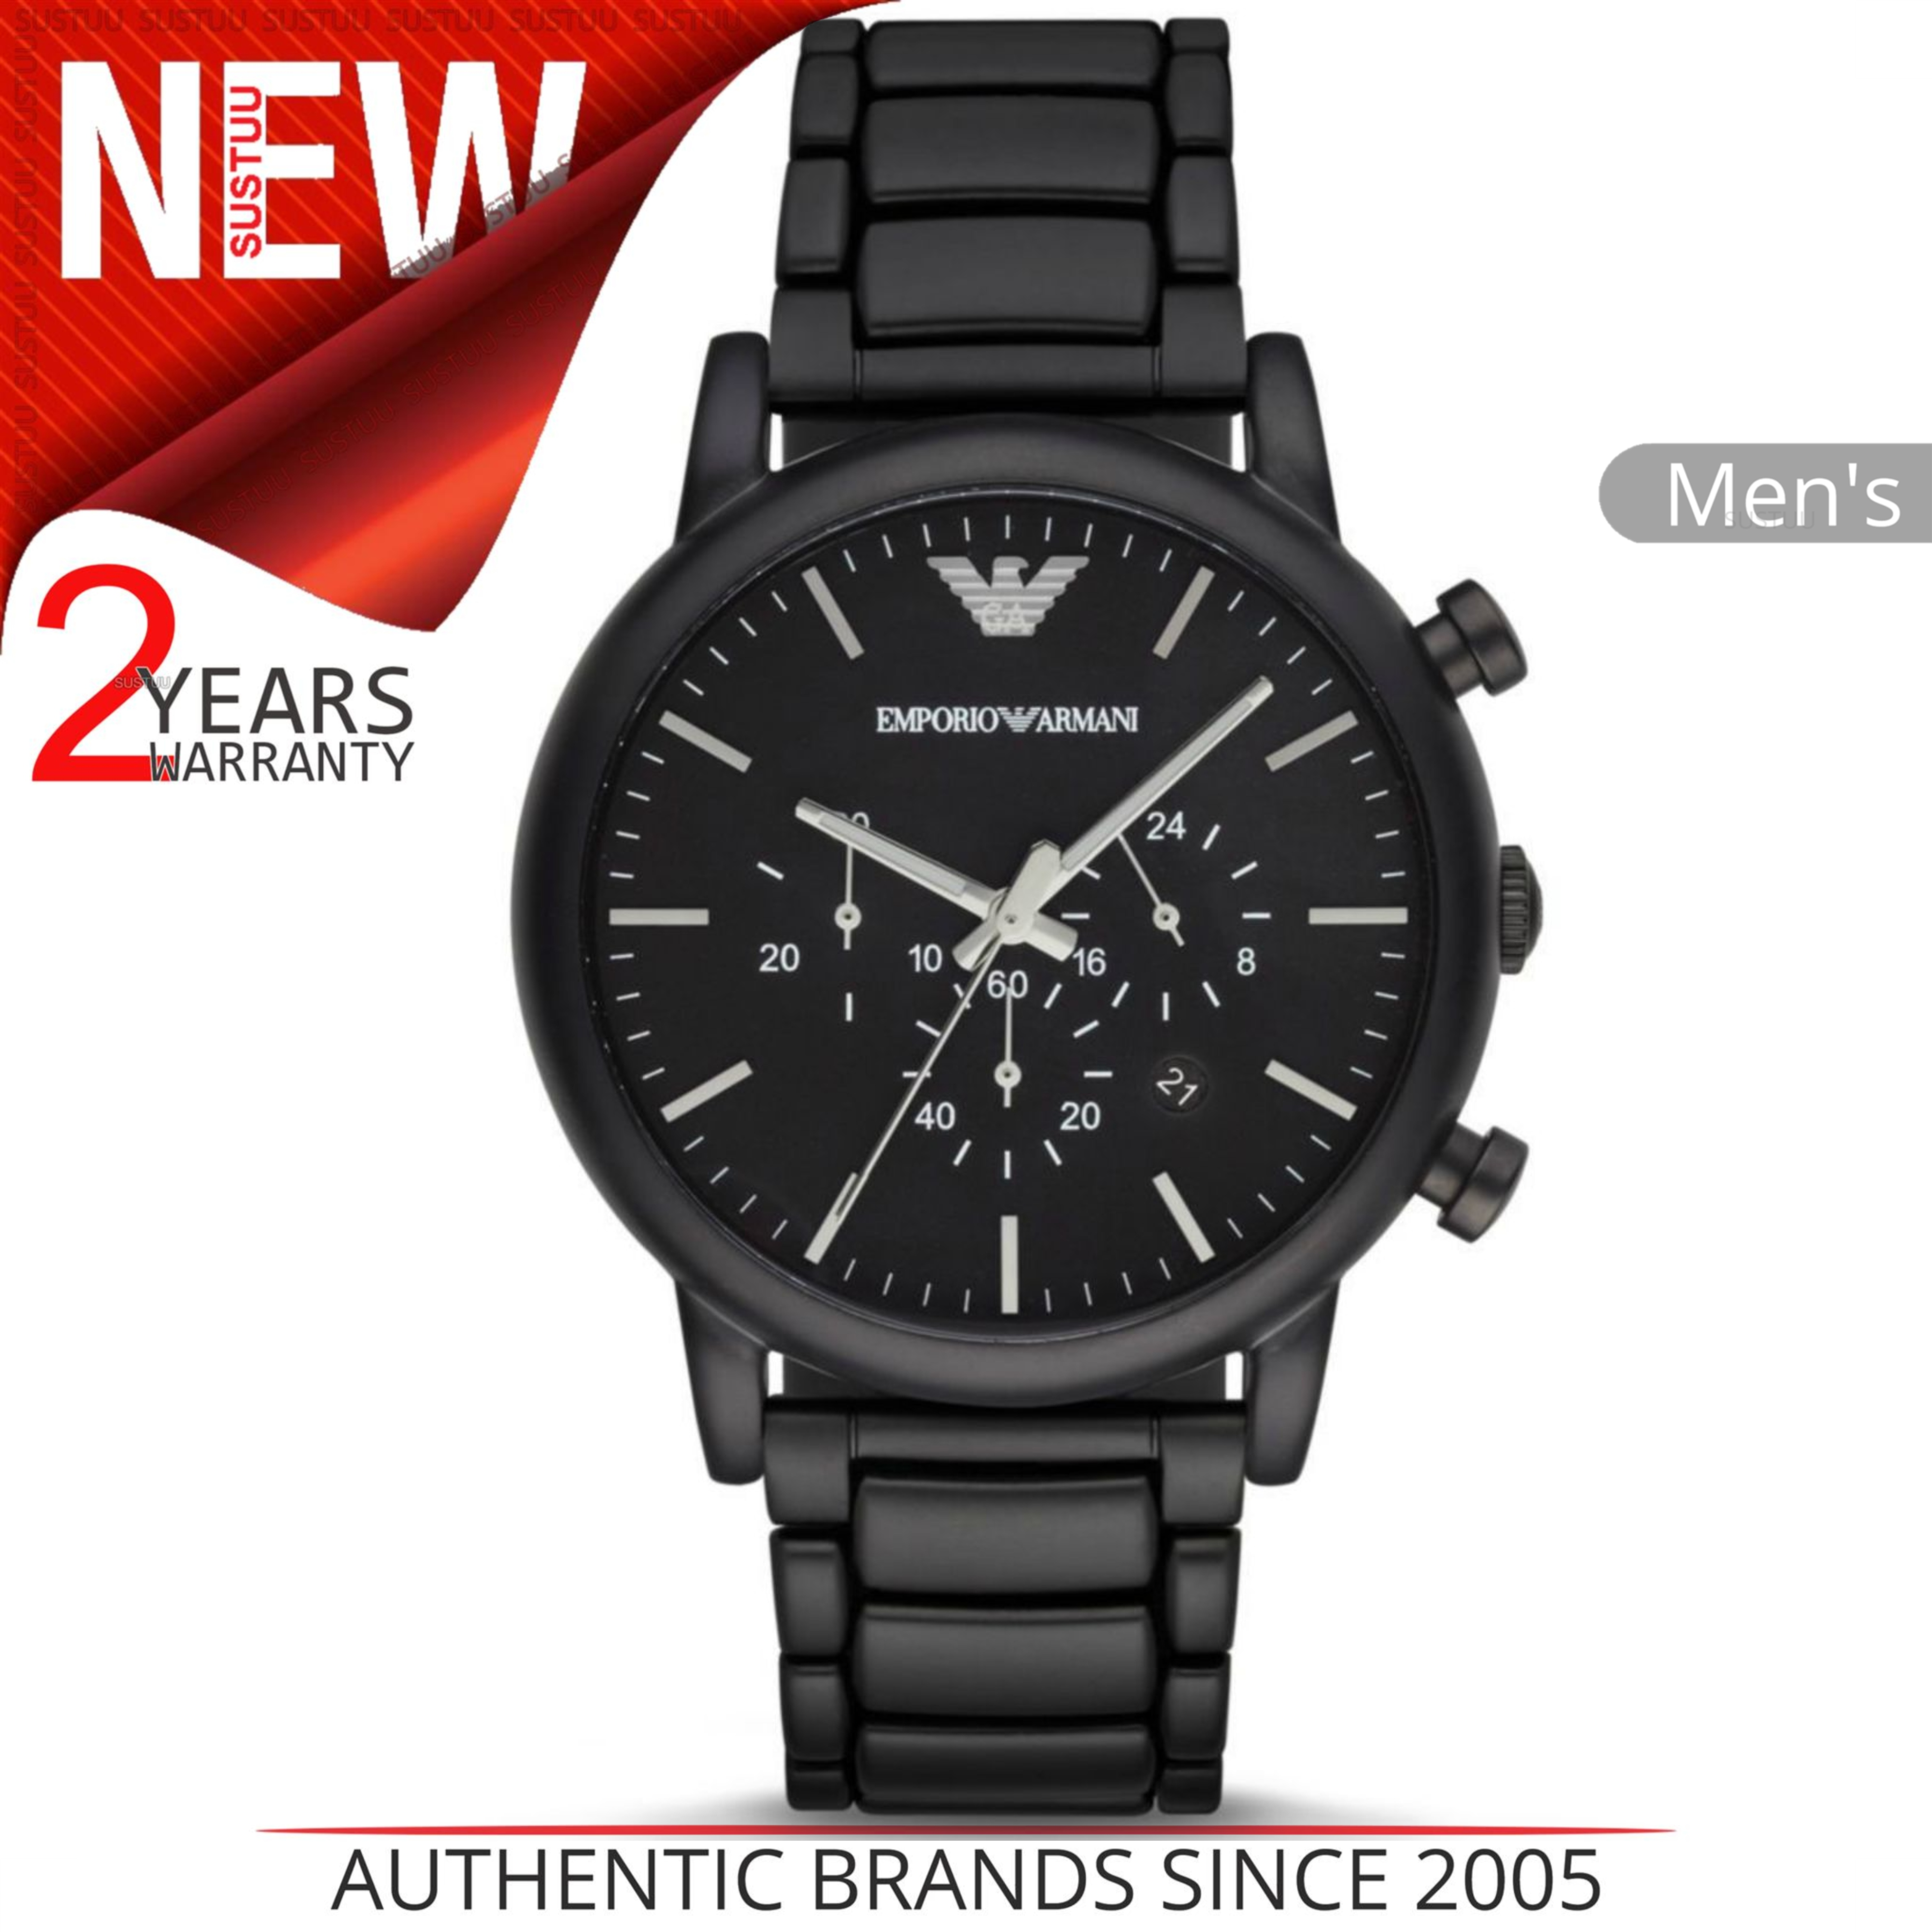 Emporio Armani Classic Men's Watch?Chrono Black Stainless Brushed Dial?AR1895